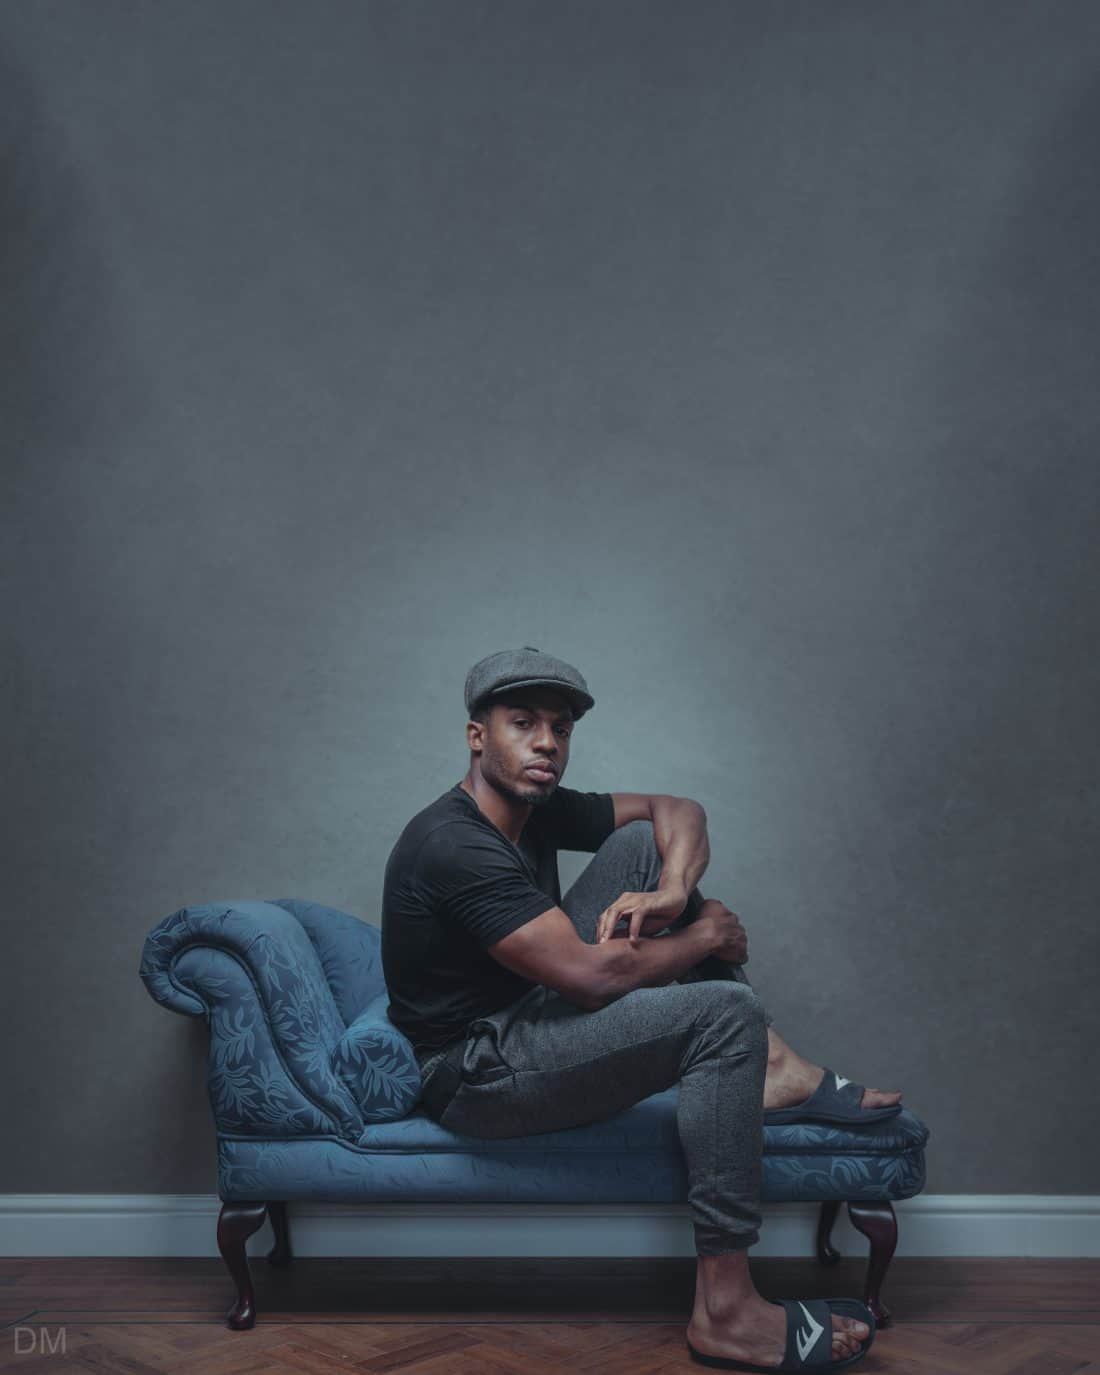 Photograph of a black man sitting on a chaise longue